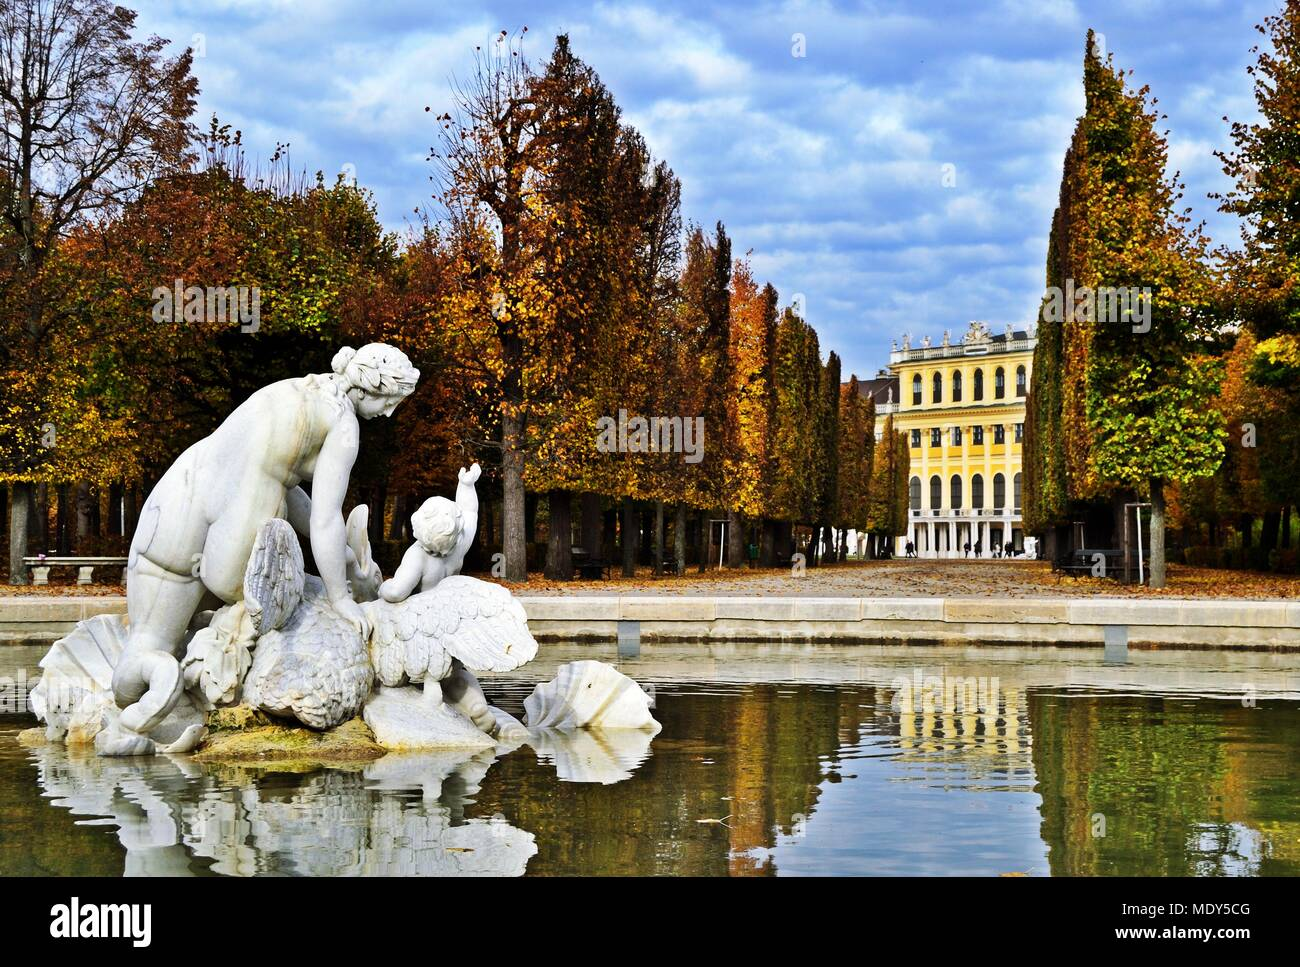 Venus Fountain in the Schönbrunn palace park in Vienna, Austria - Stock Image